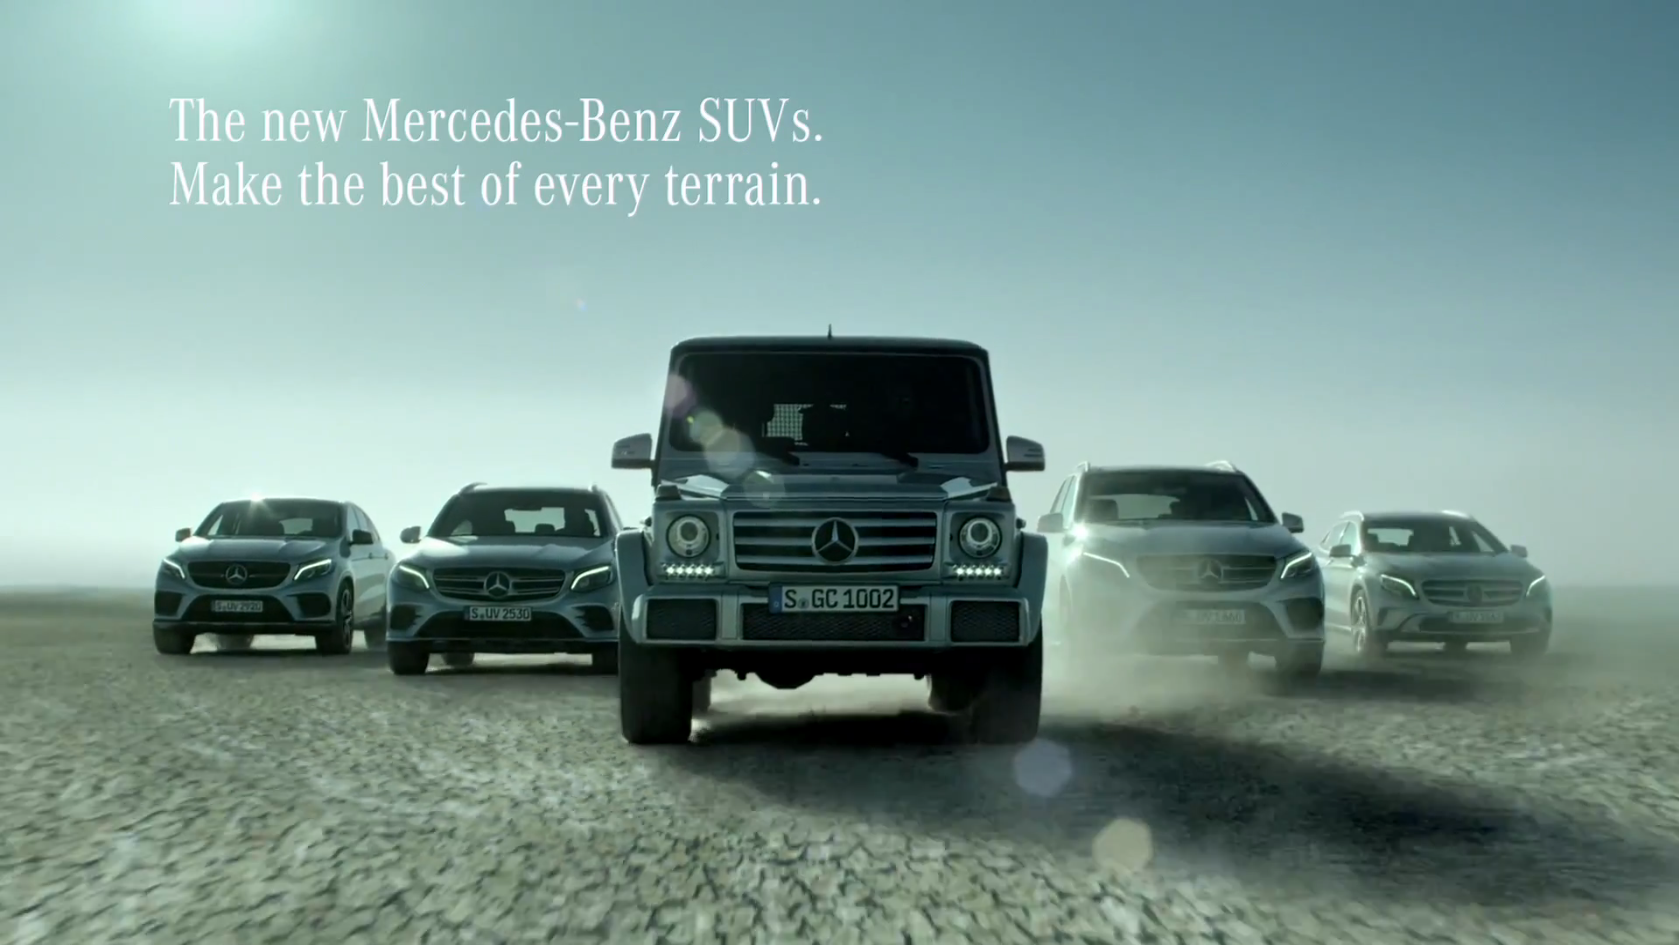 mercedes benz commercial insists suv family feels at home